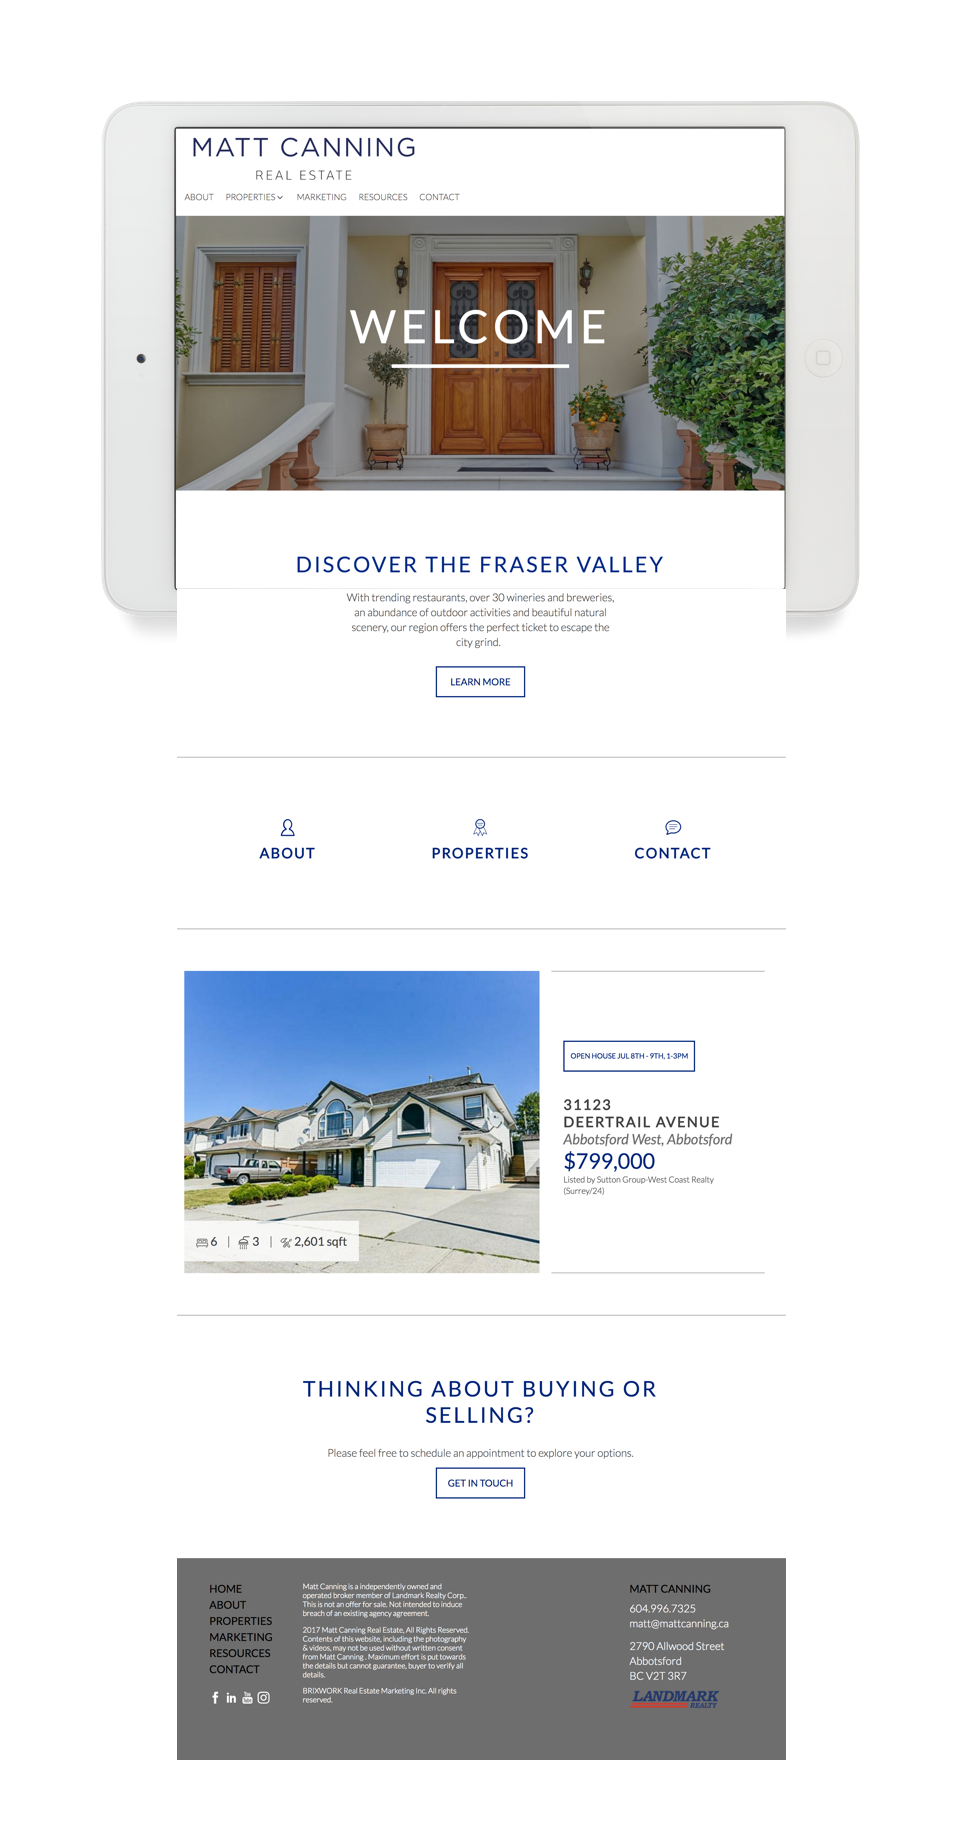 Real estate marketing website design tablet view for Matt Canning, Fraser Valley